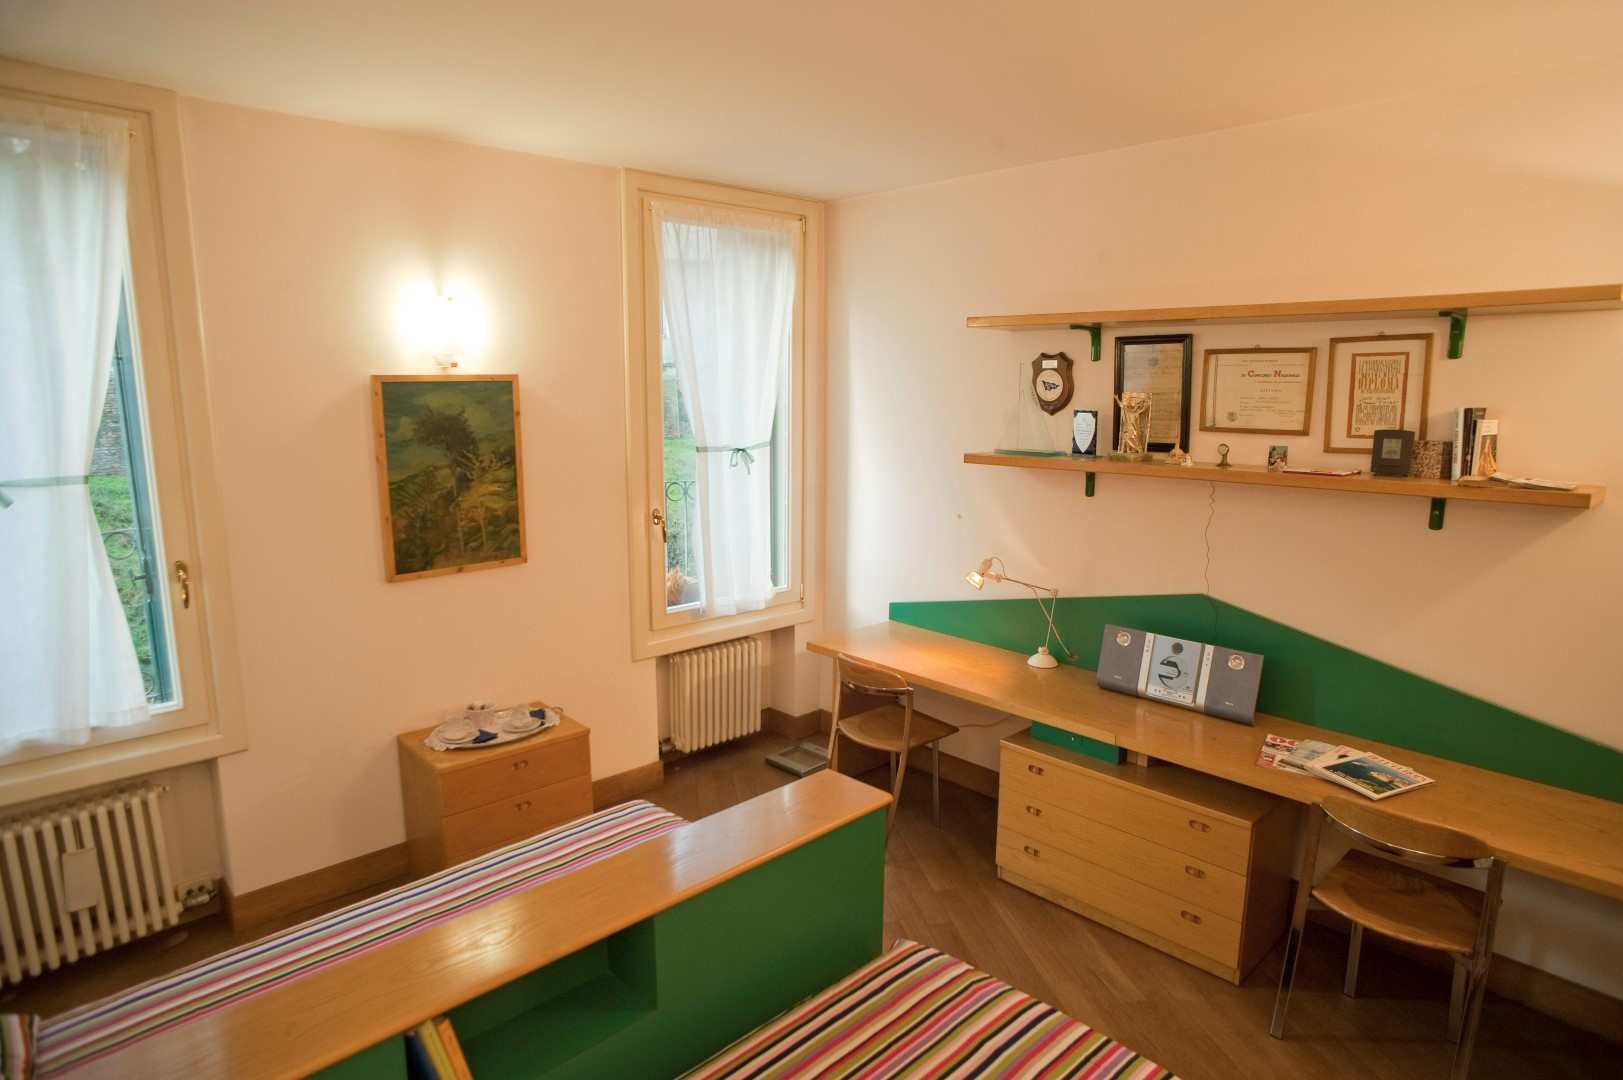 B&b al ponte Vicenza Camera doppia 1490